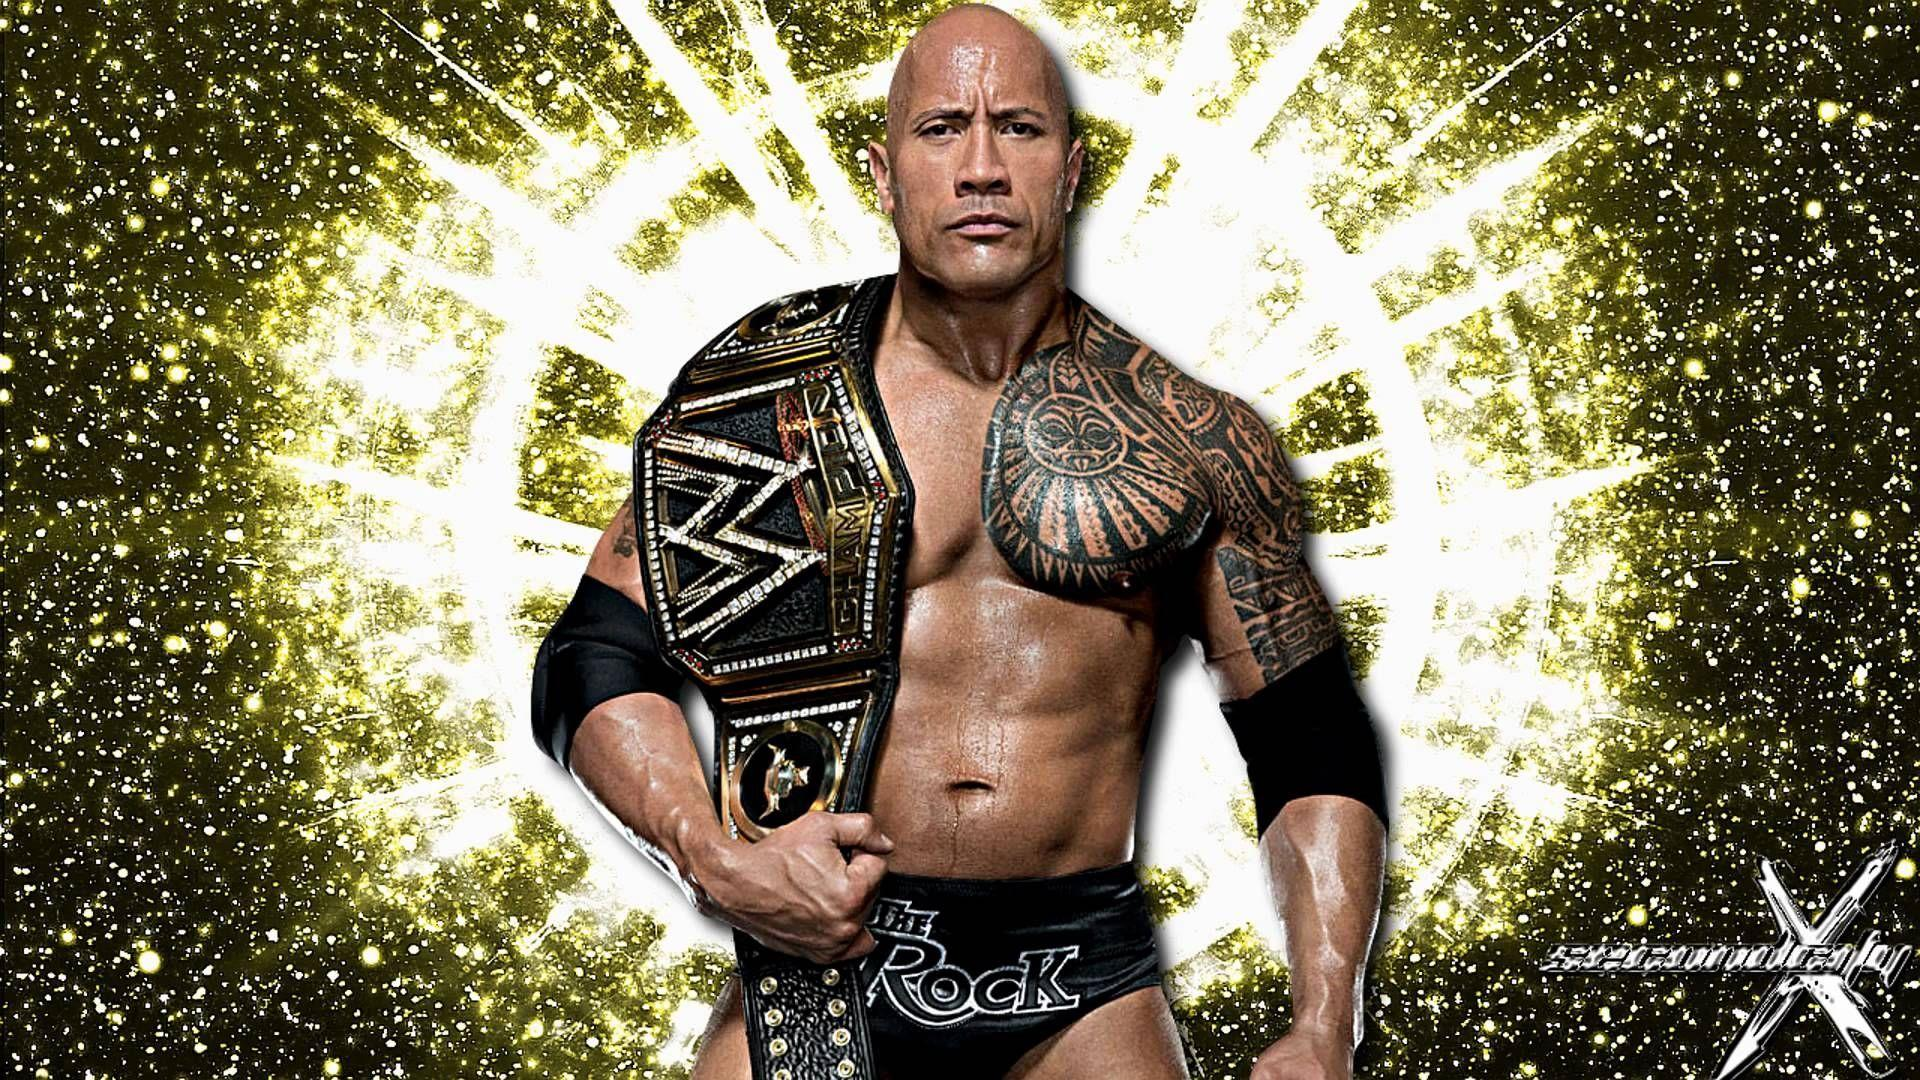 WWE The Rock Dwayne Johnson HD Wallpapers For Desktop 1600×900 The